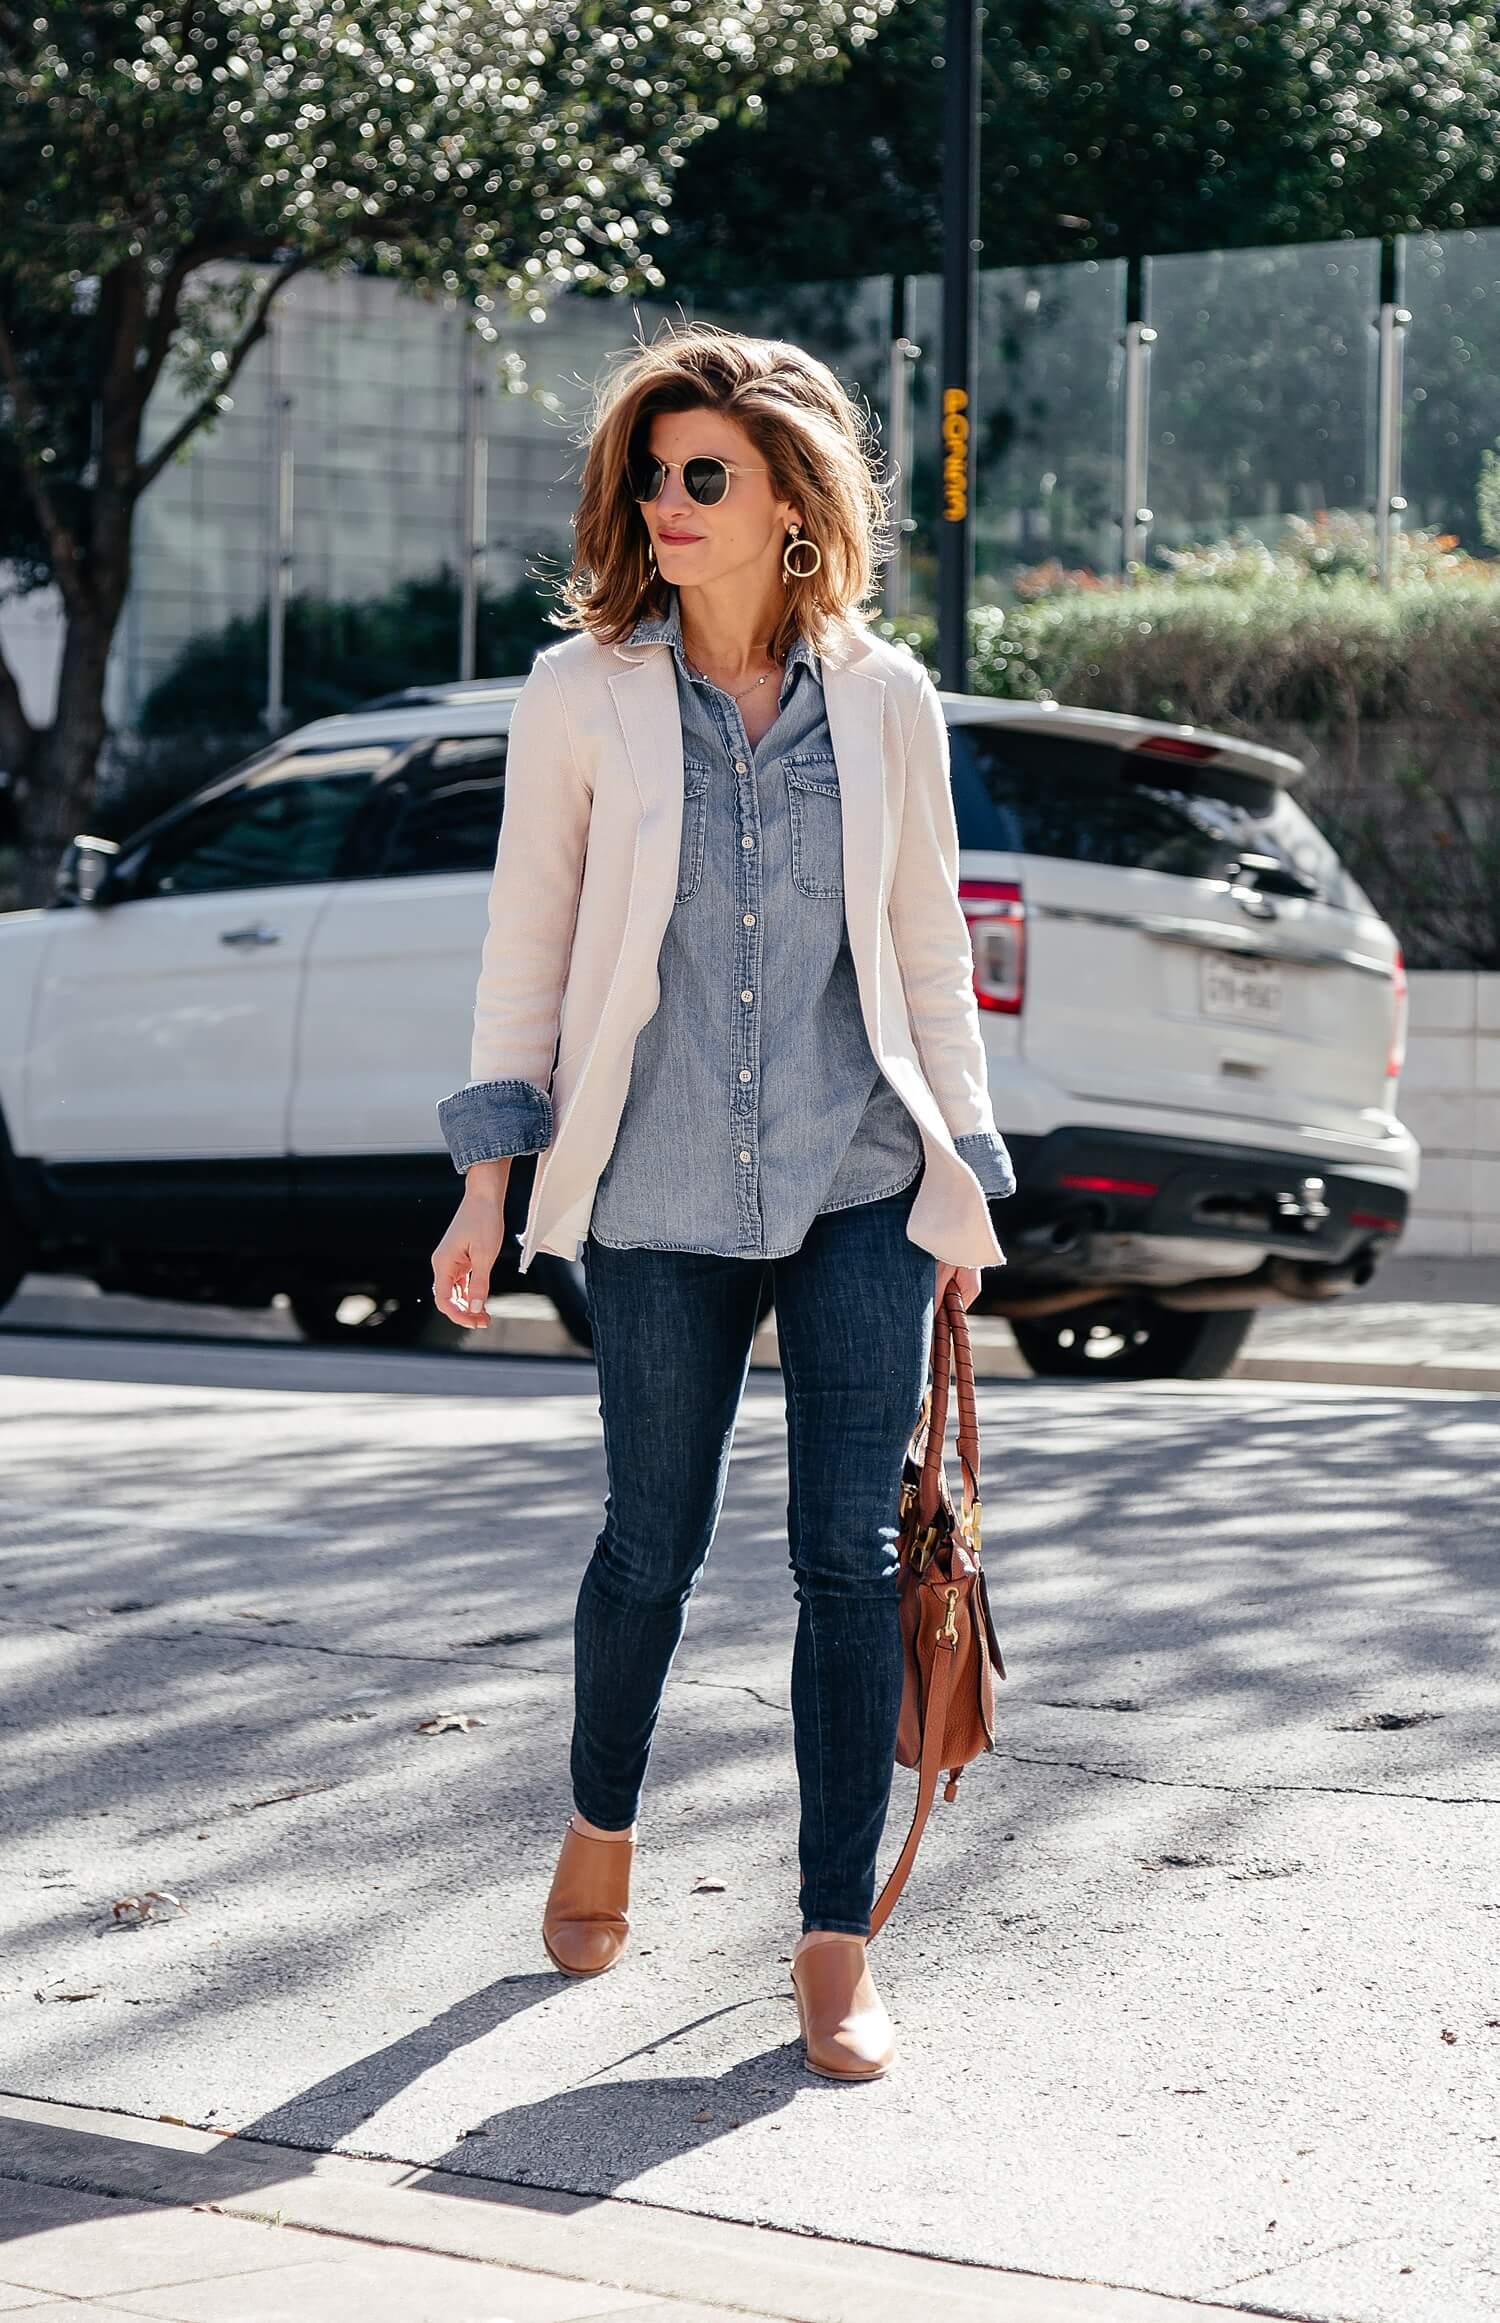 ab524de364 How To Wear a Denim Shirt    13+ Ways to Style Chambray